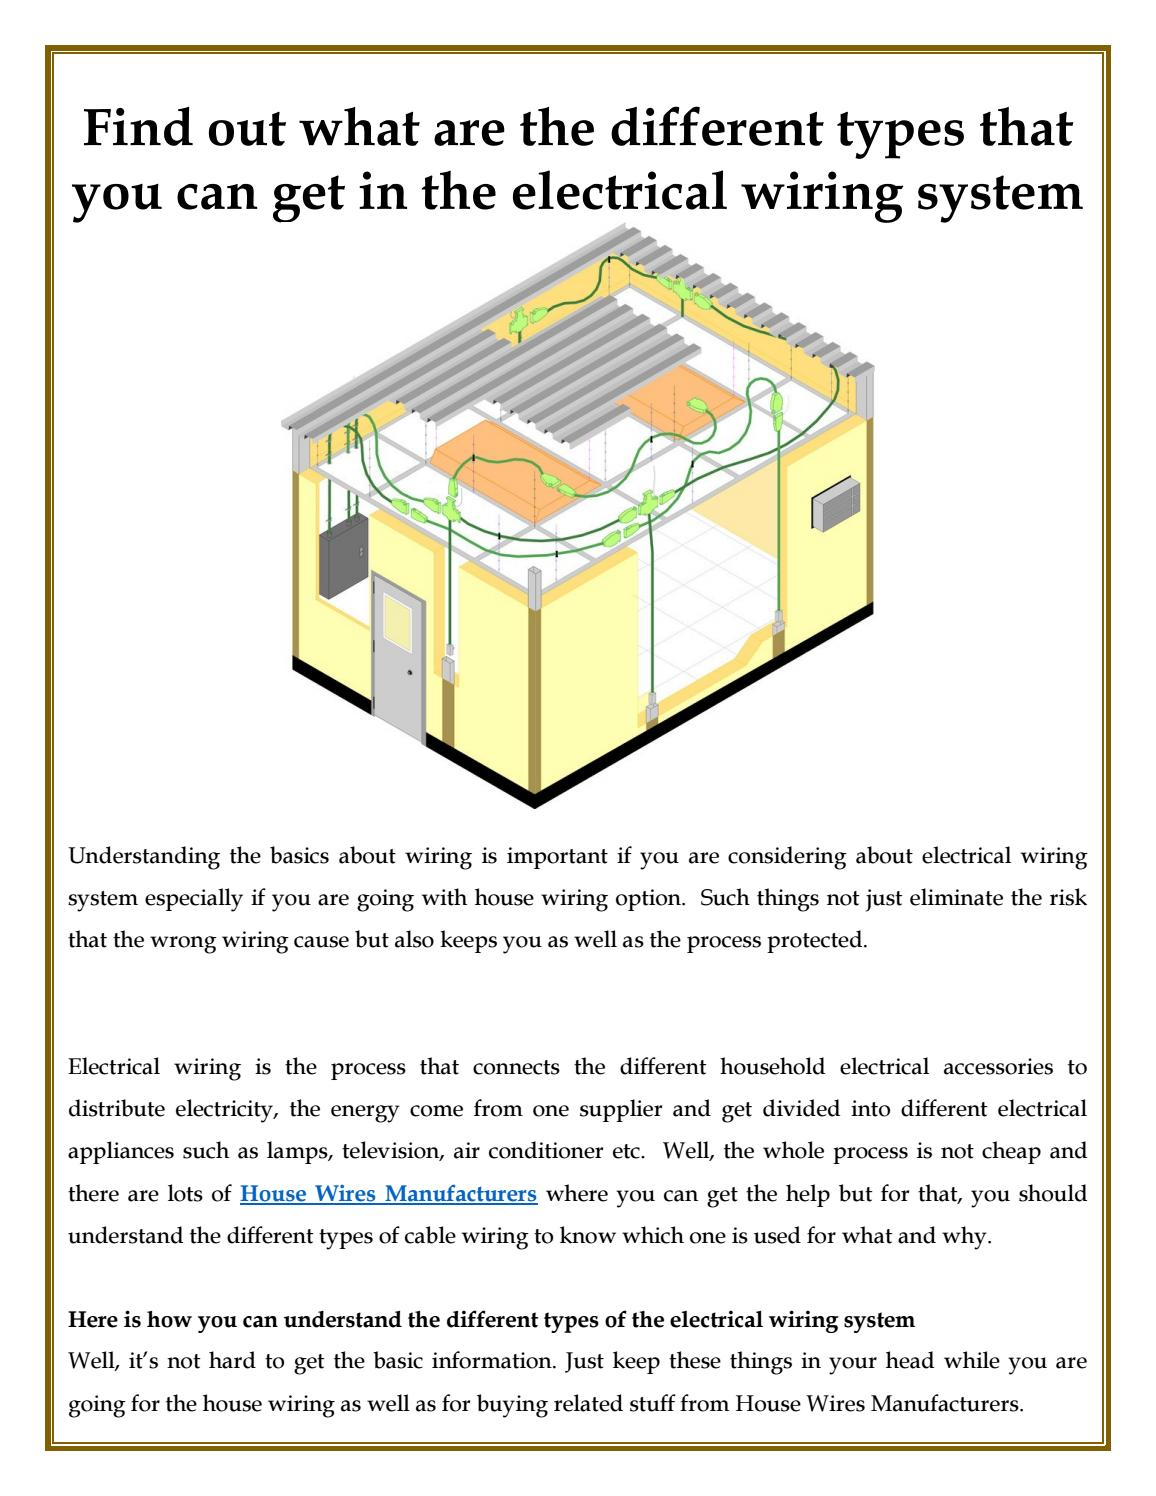 hight resolution of different types that you can get in the electrical wiring system by ultracab issuu